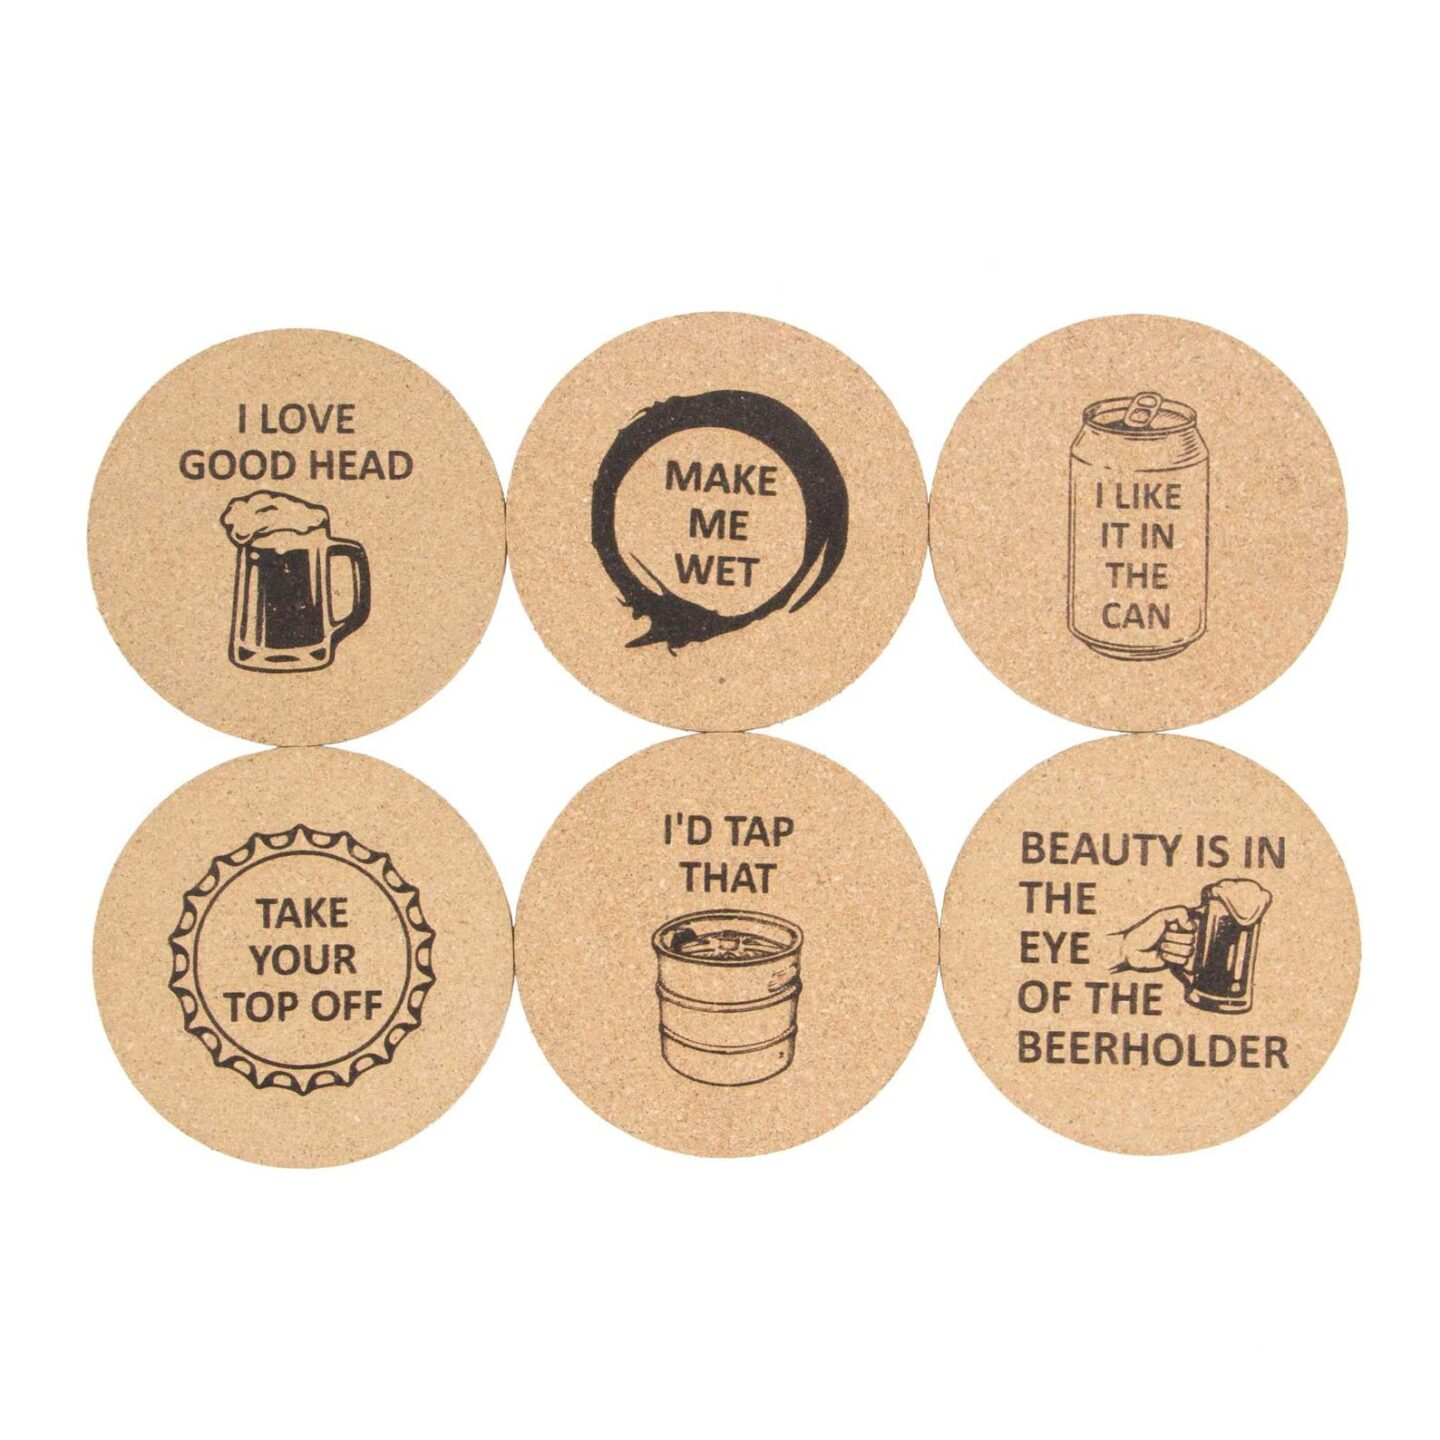 Naughty coasters for valentines day gift